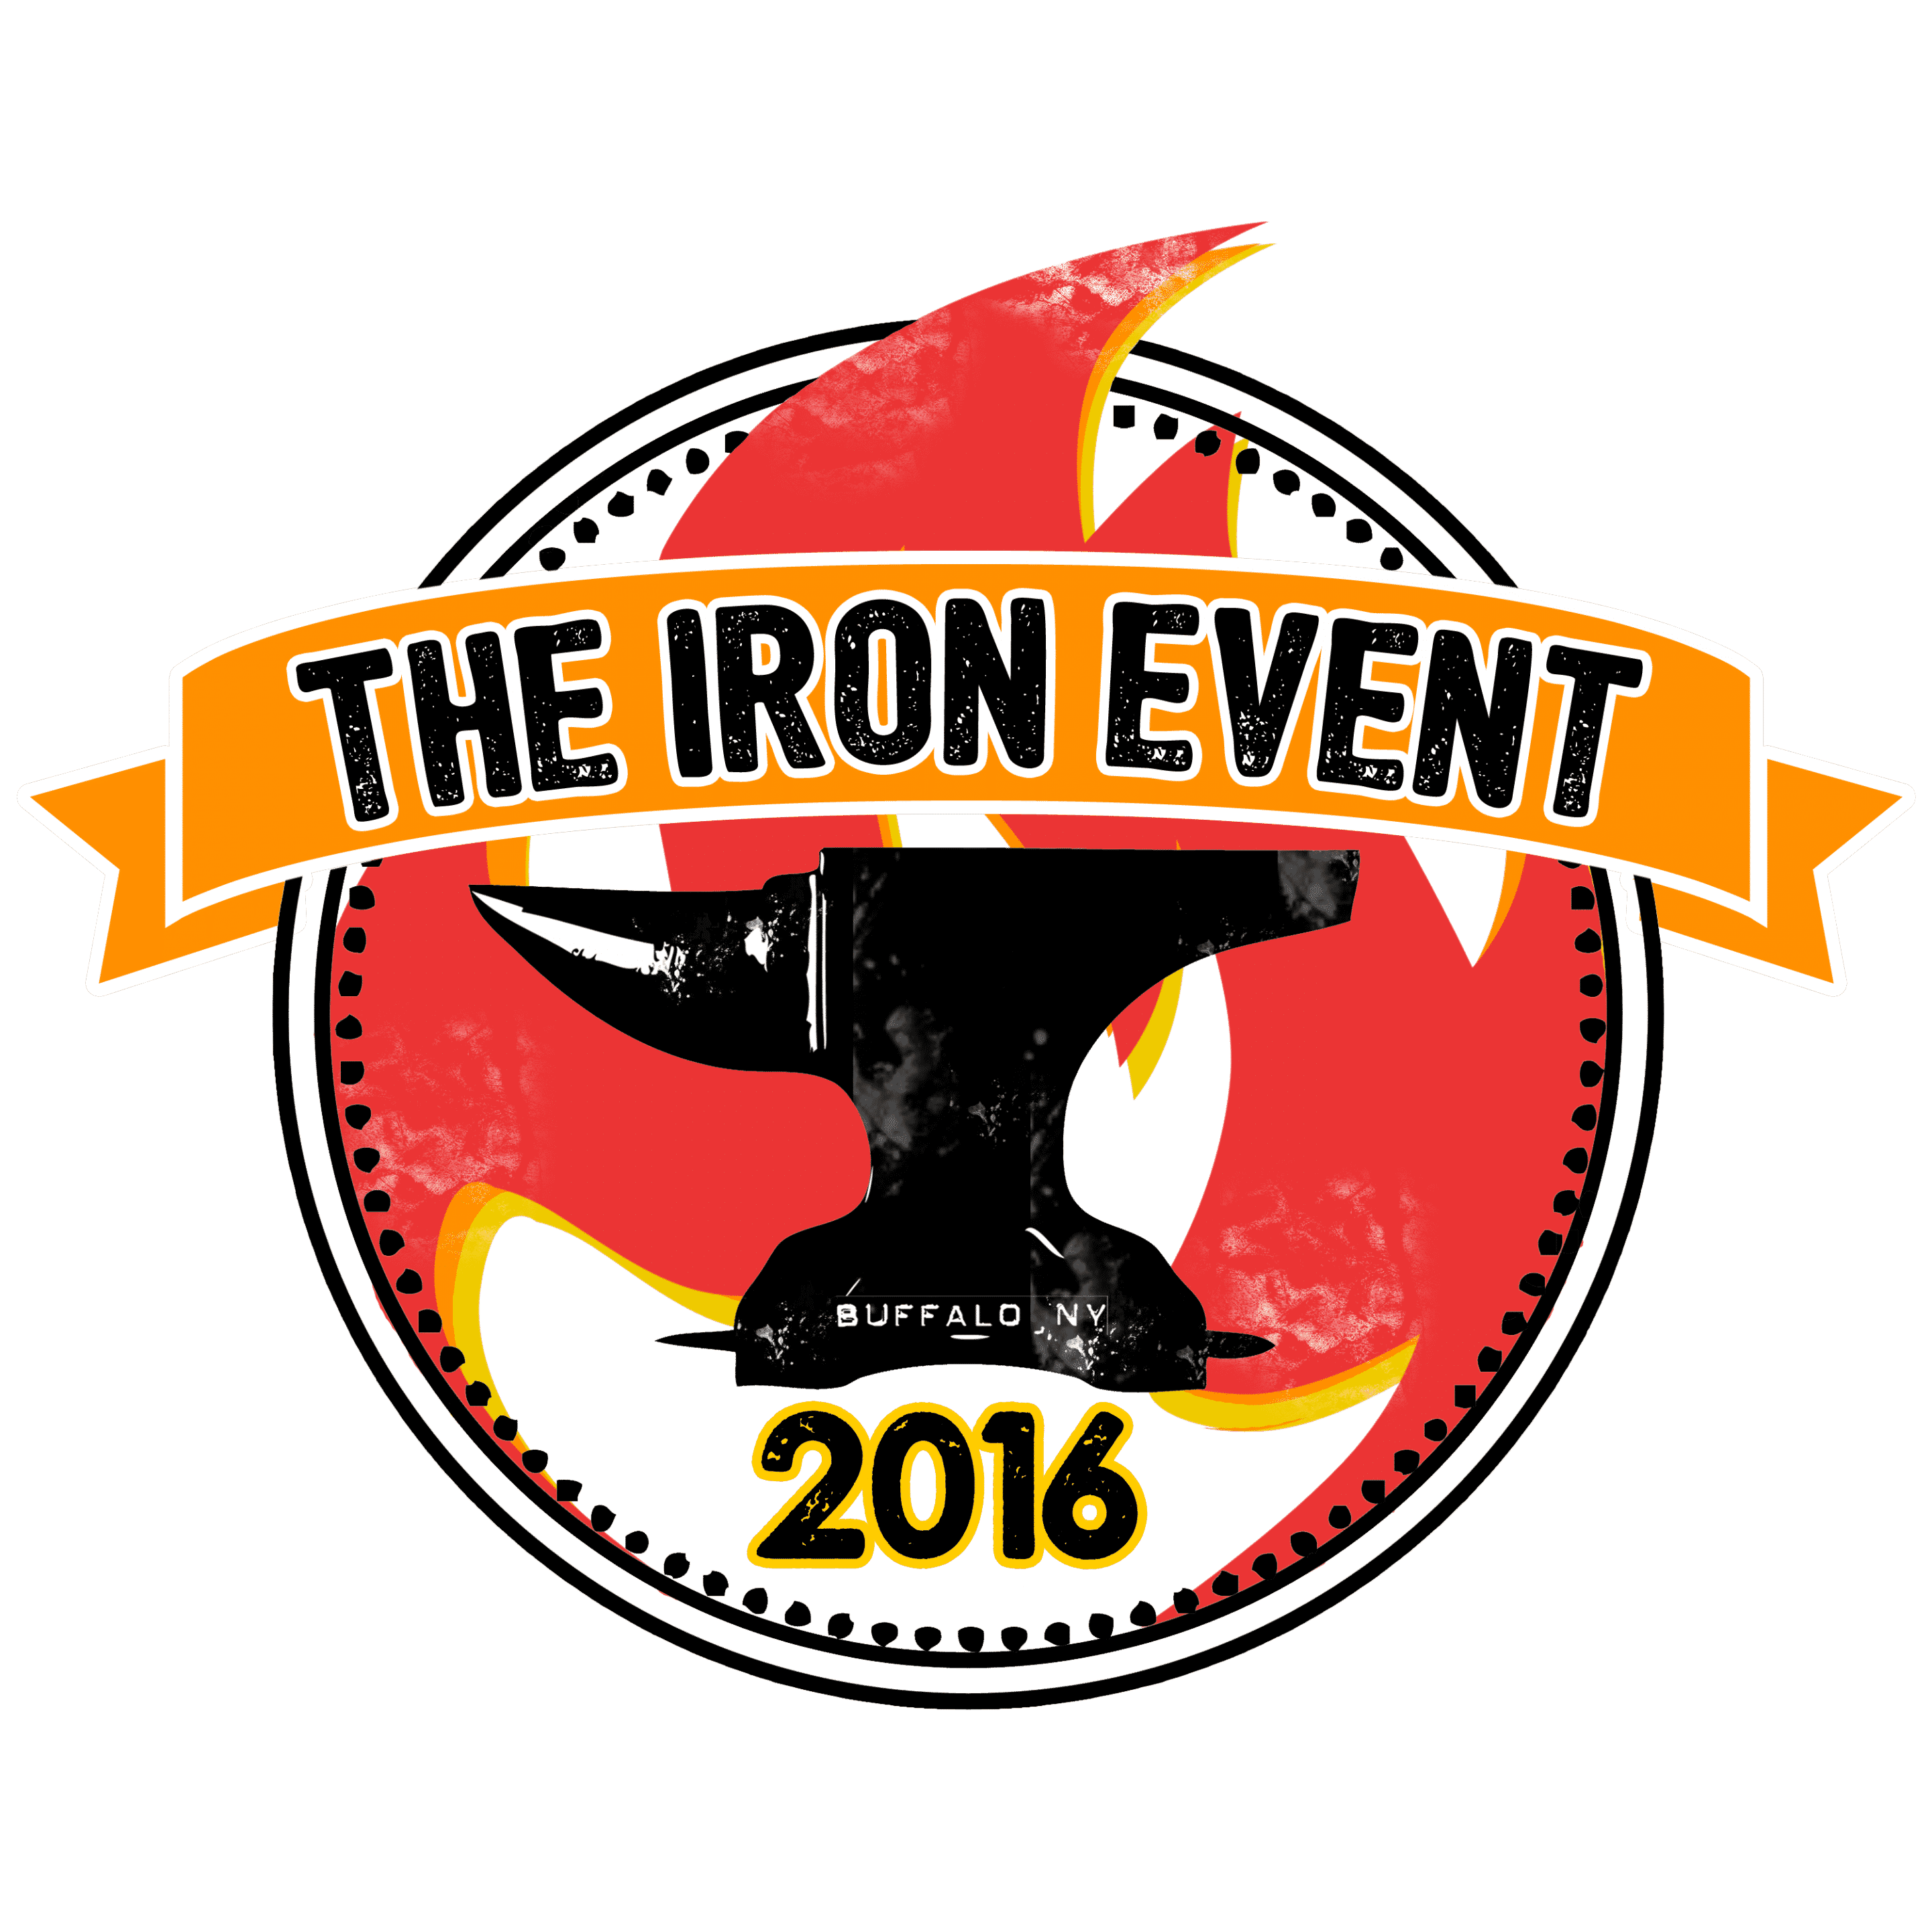 The Iron Event in Buffalo